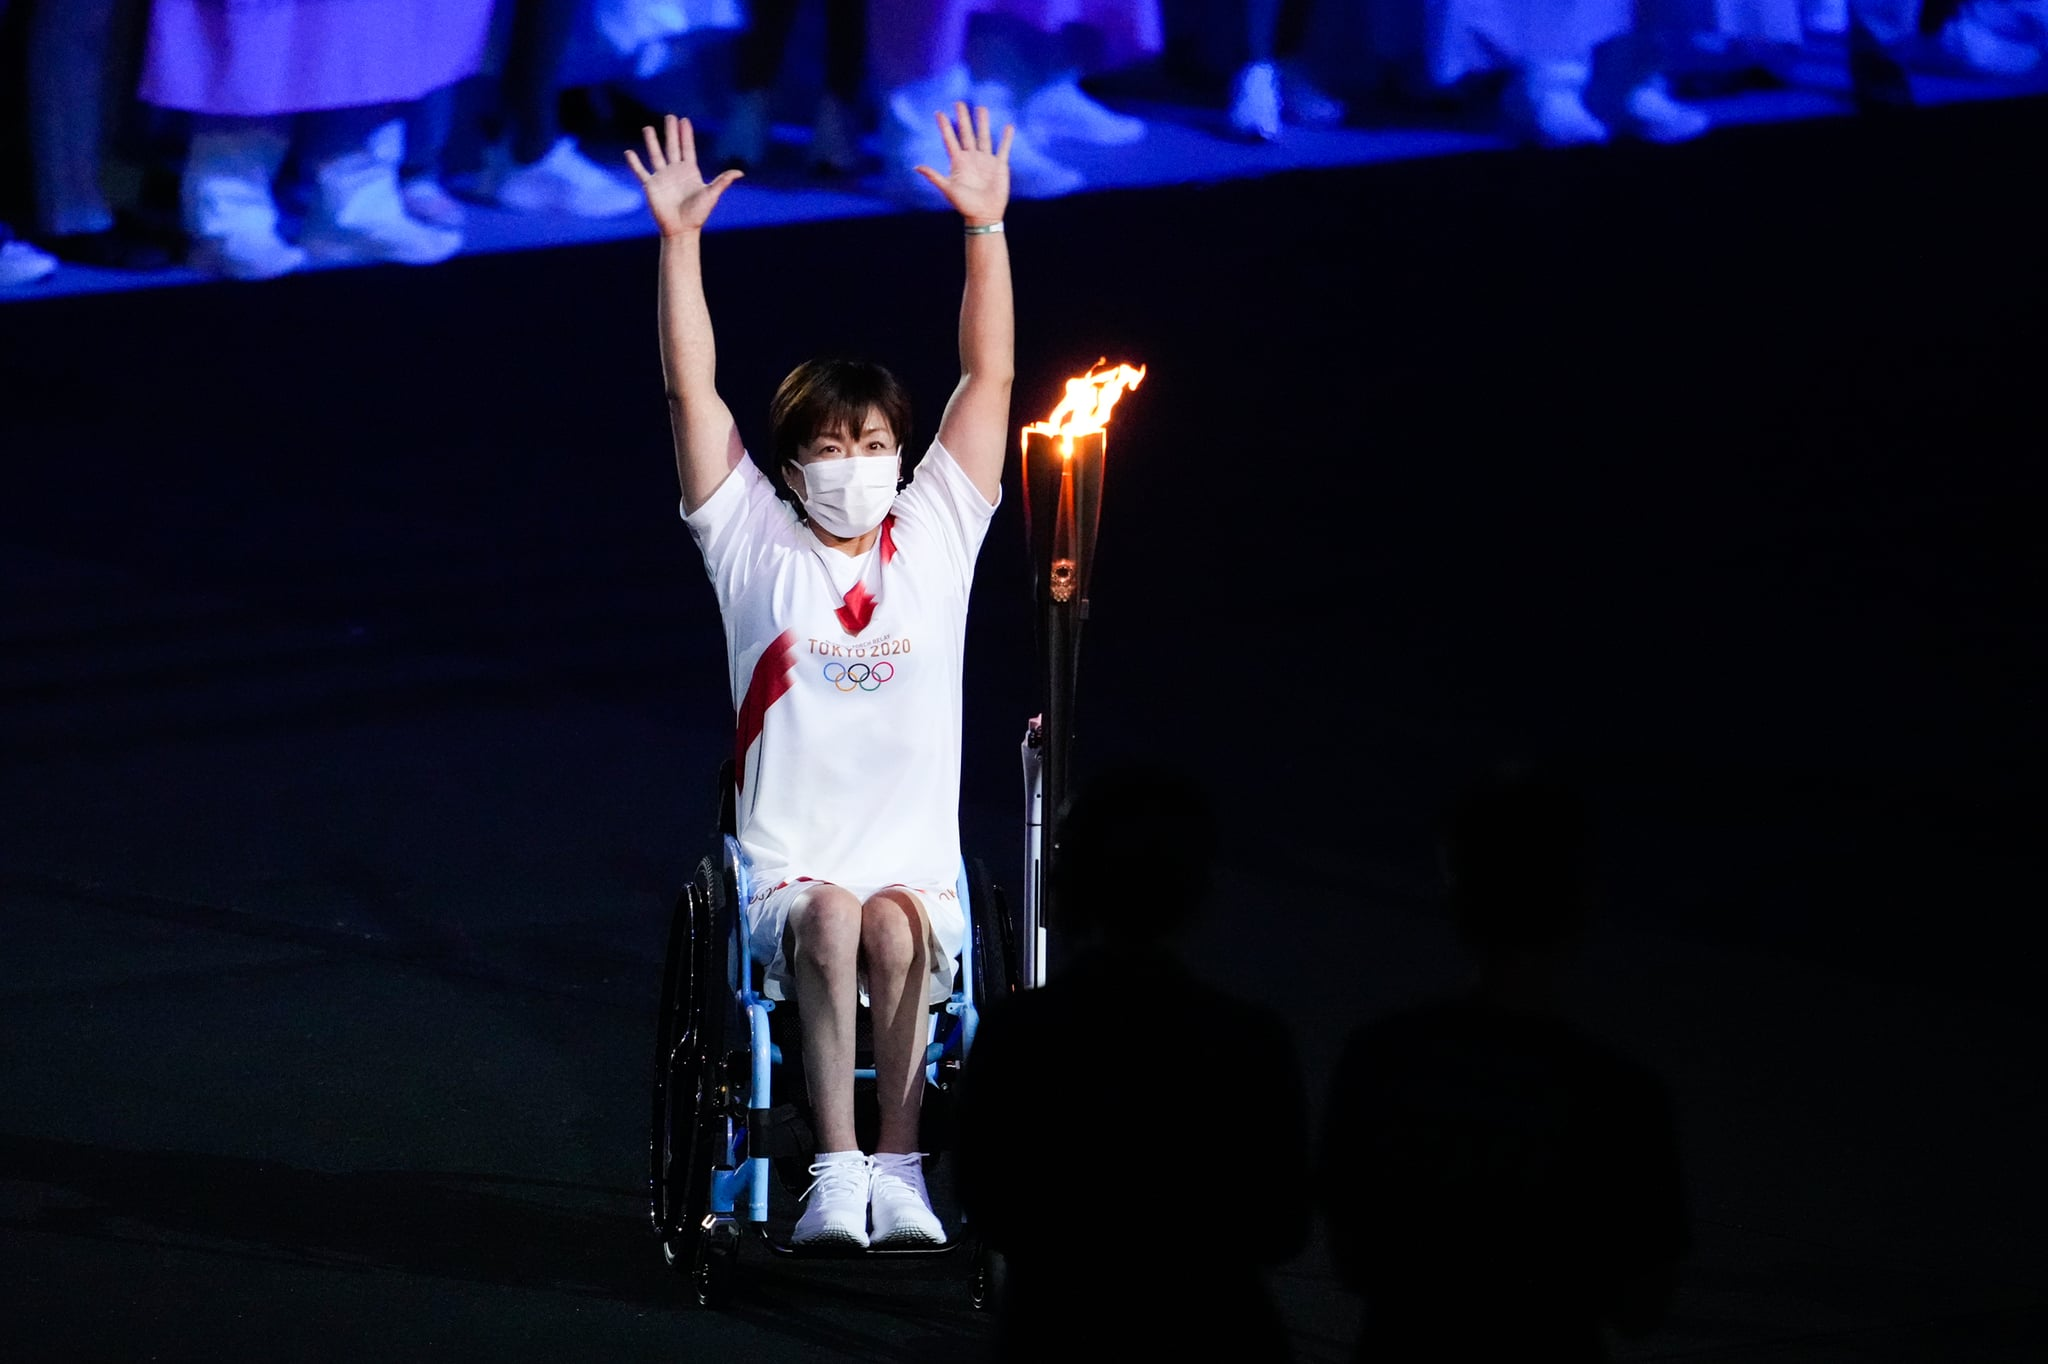 TOKYO, JAPAN - JULY 23: Paralympic athlete Wakako Tsuchida carries the Olympic torch during the Opening Ceremony of the Tokyo 2020 Olympic Games at Olympic Stadium on July 23, 2021 in Tokyo, Japan. (Photo by Wei Zheng/CHINASPORTS/VCG via Getty Images)